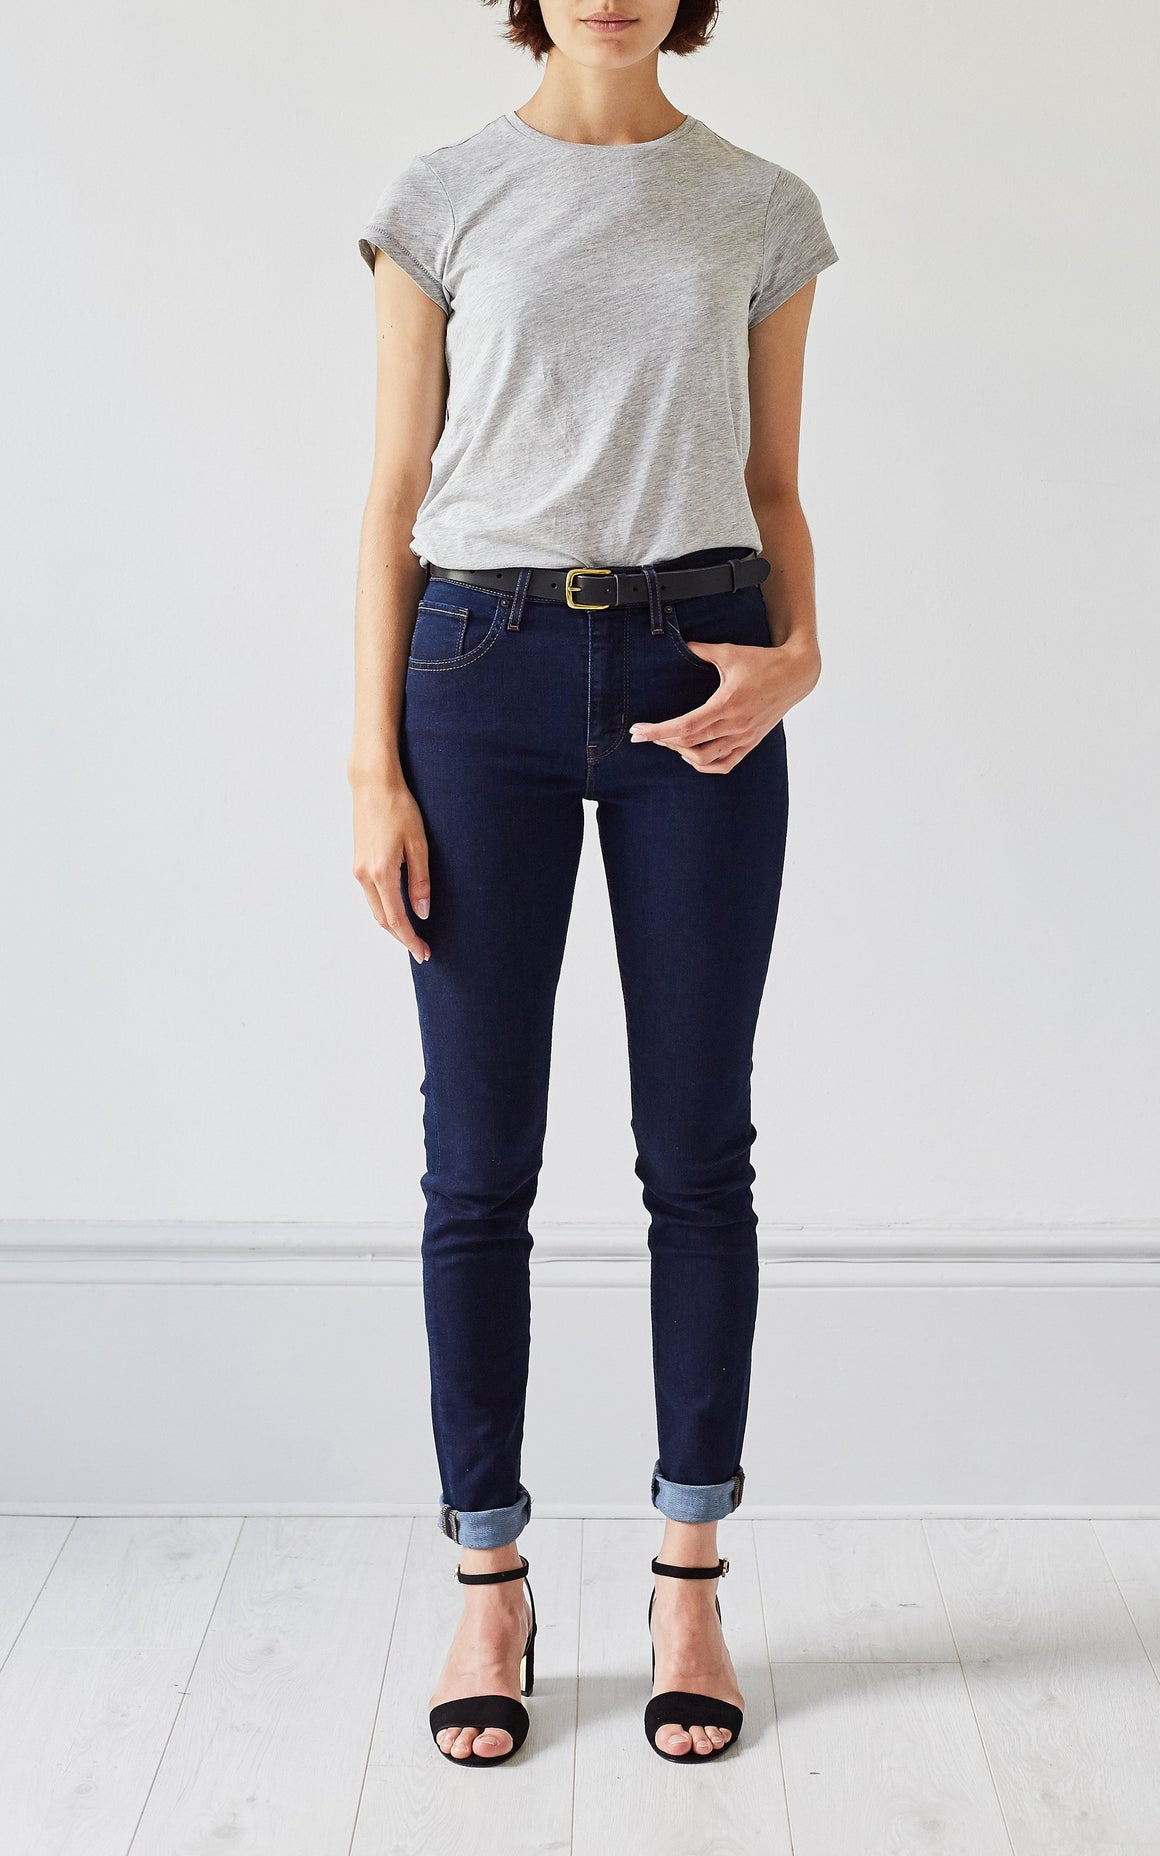 Jenny Hip & Waist Belt, Belt - Grace Gordon